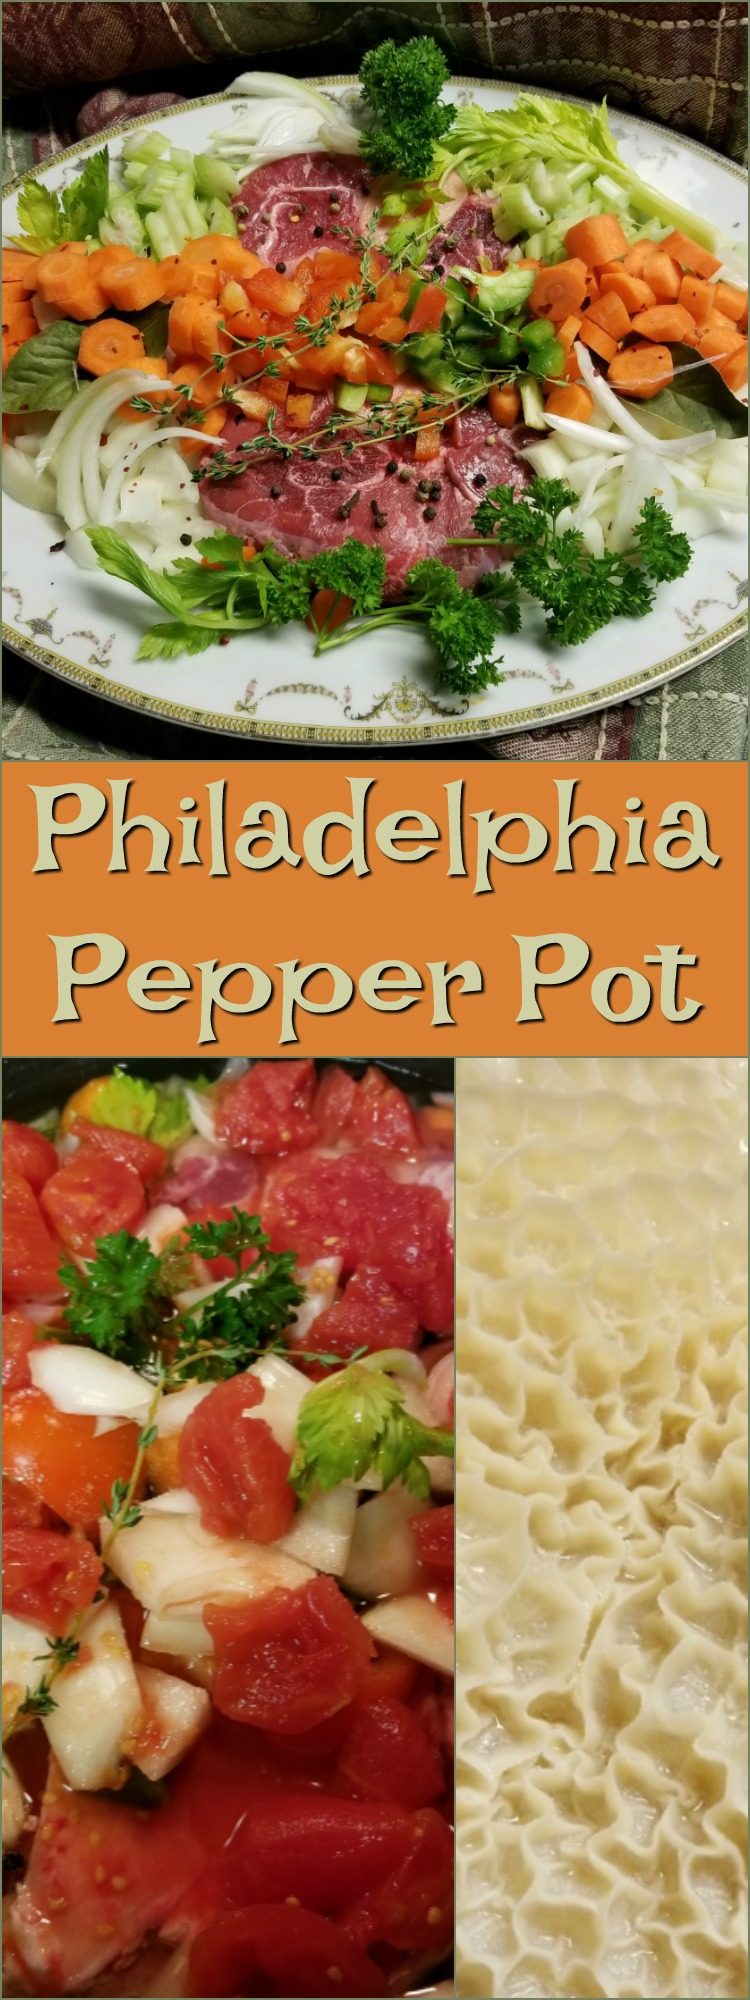 #Philadelphia #pepper pot #soup is the perfect slow cooker recipe! I would still recommend preparing the tripe as I did - separately on a slow simmer for hours on end. The rest of the soup prep can easily be made in the crock pot.  Near the end of the soup and veggies cooking cycle, add the diced tripe.